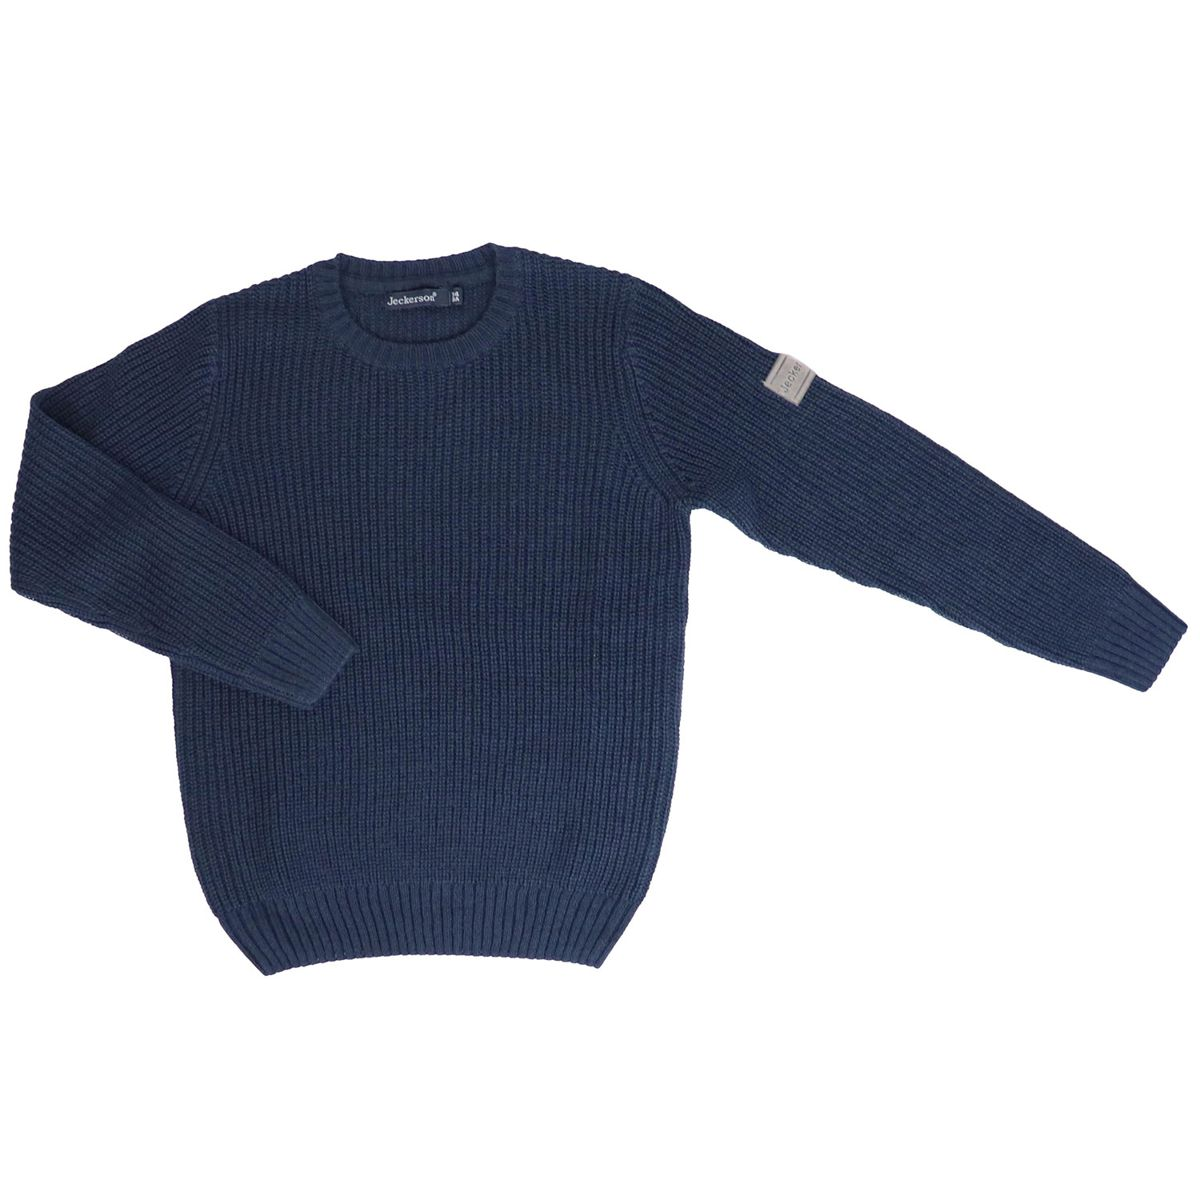 Ribbed crew neck in cashmere blend Blue Jeckerson